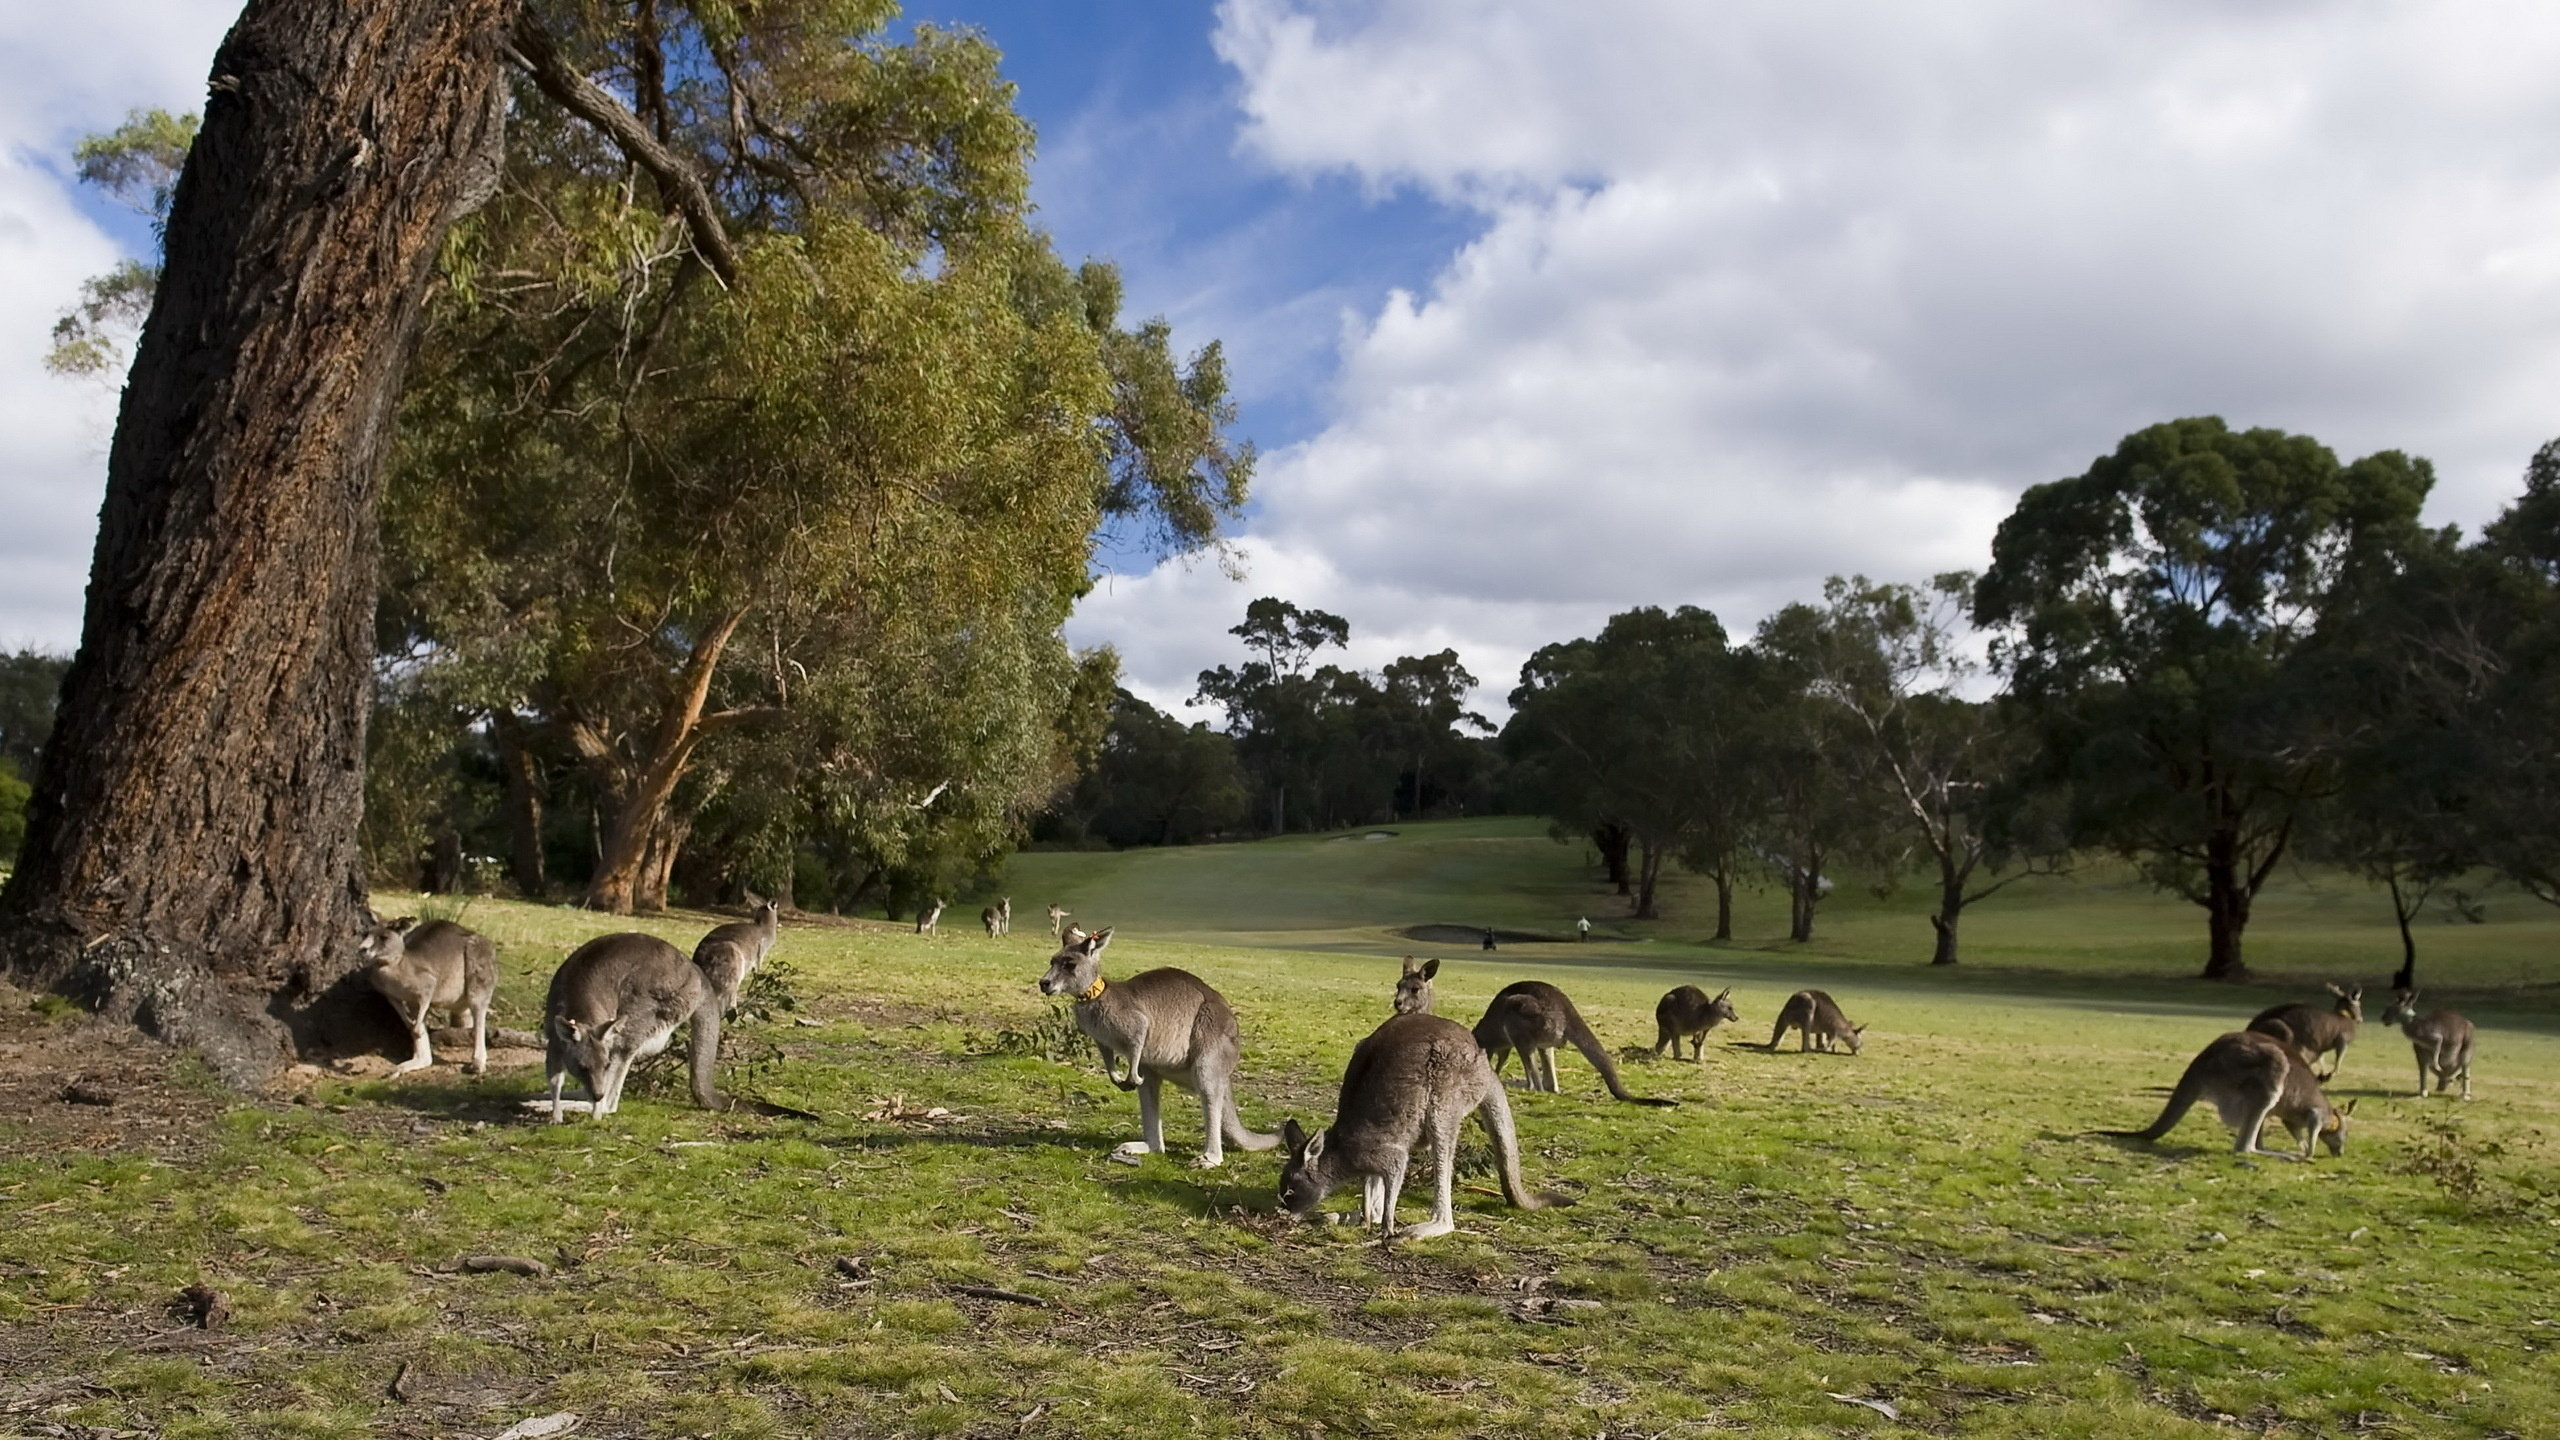 Awesome Kangaroo free wallpaper ID:122524 for hd 2560x1440 PC